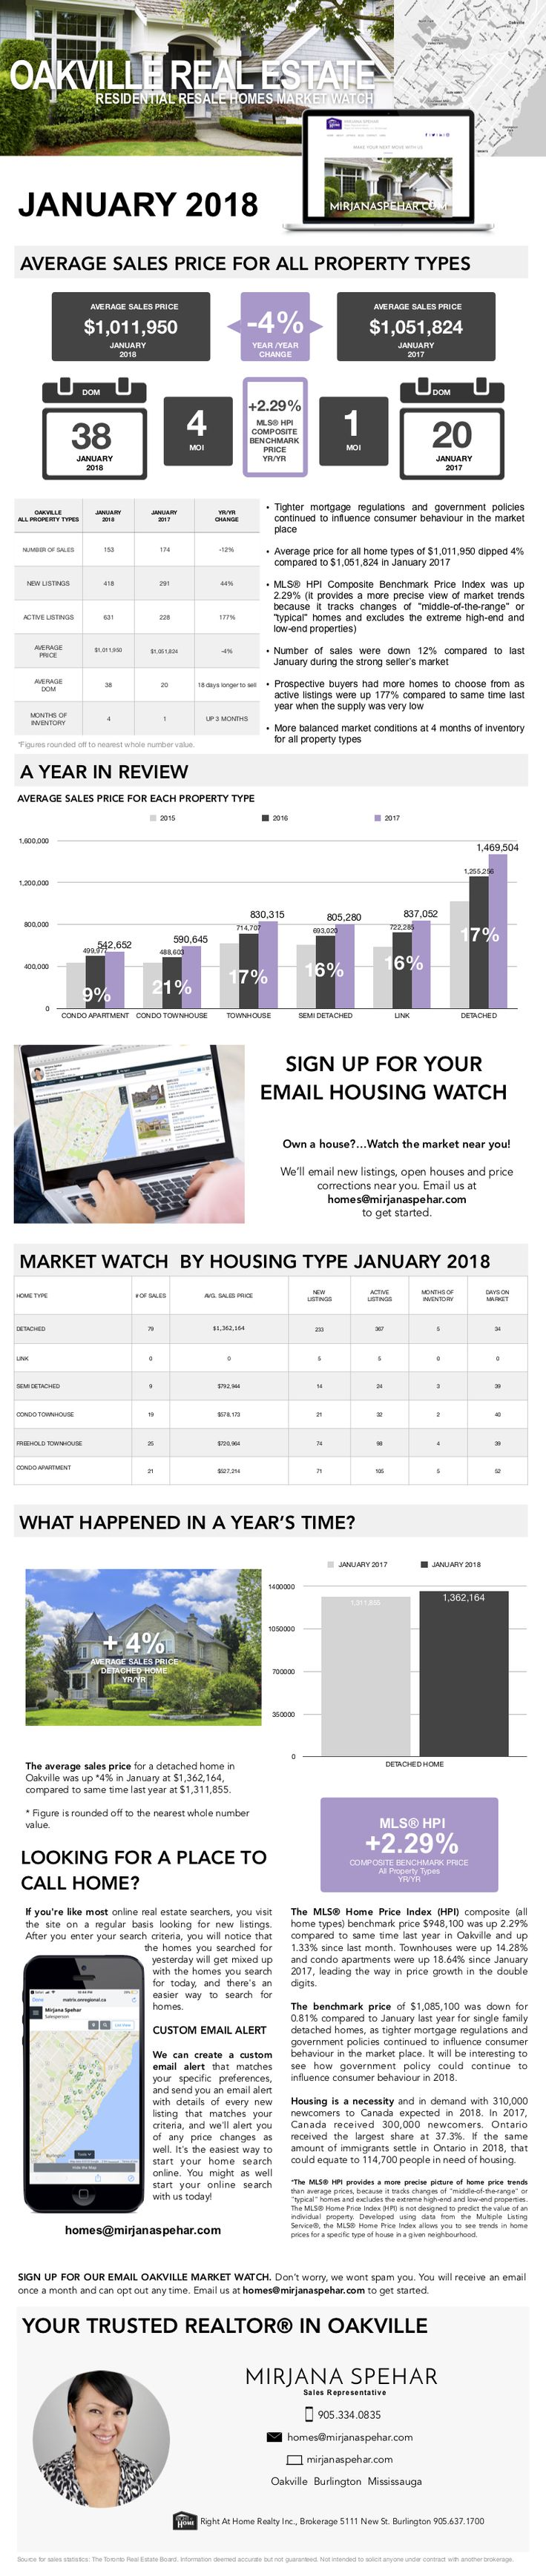 JANUARY 2018 Tighter mortgage regulations and government policy continue to influence consumer behaviour. Check out this month's blog for more information about Oakville's real estate market, housing sales prices and more.